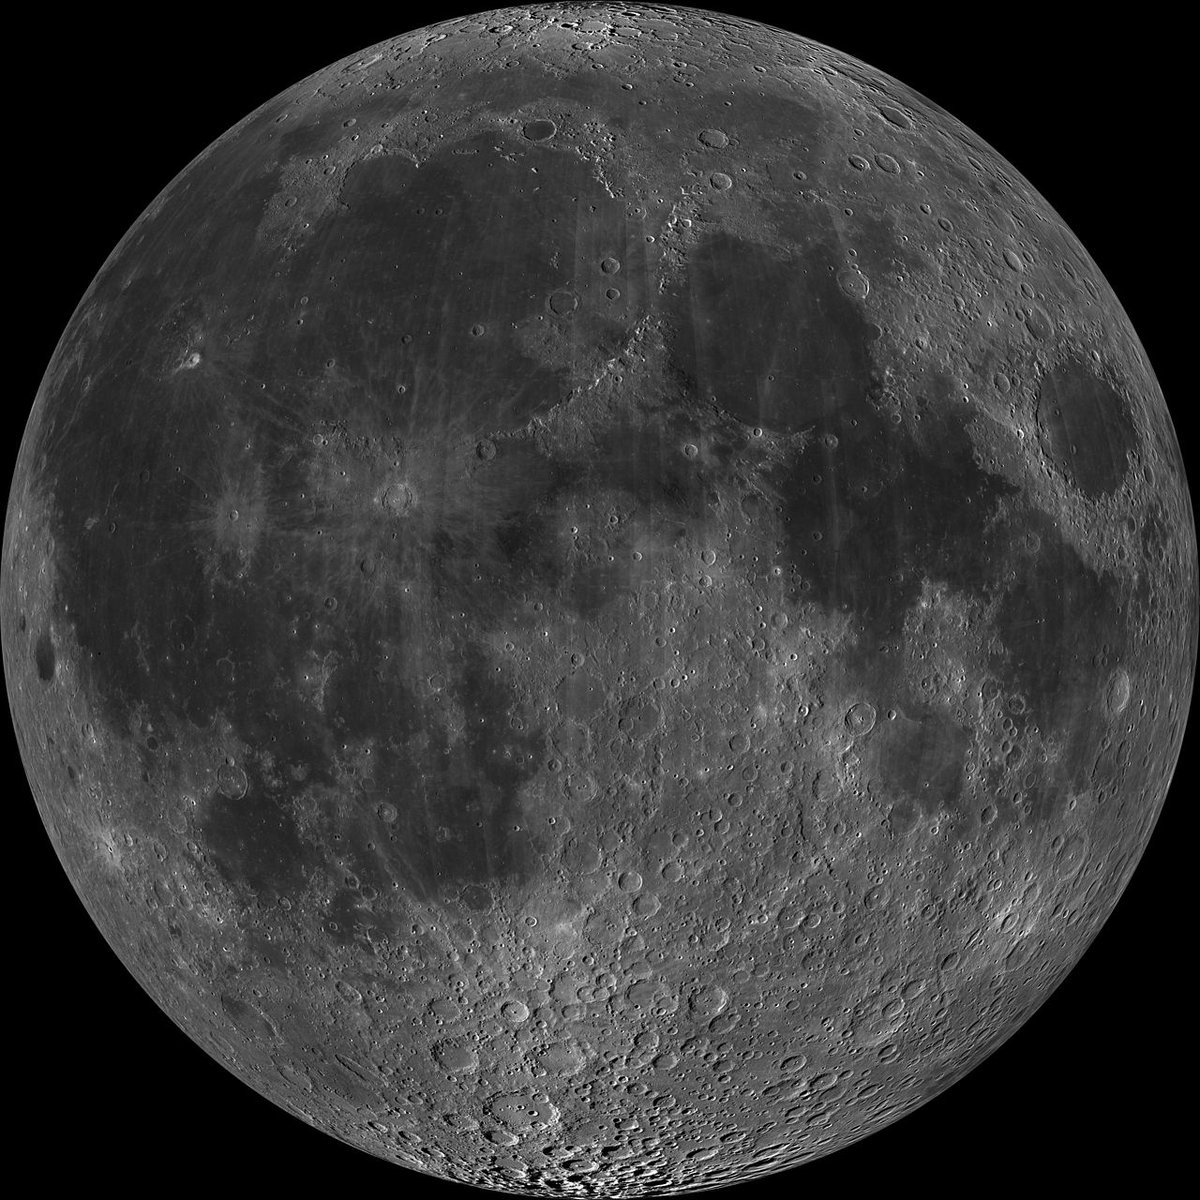 Interesting fact: The moon is moving away from the Earth at a rate of approximately 4 cm per year!